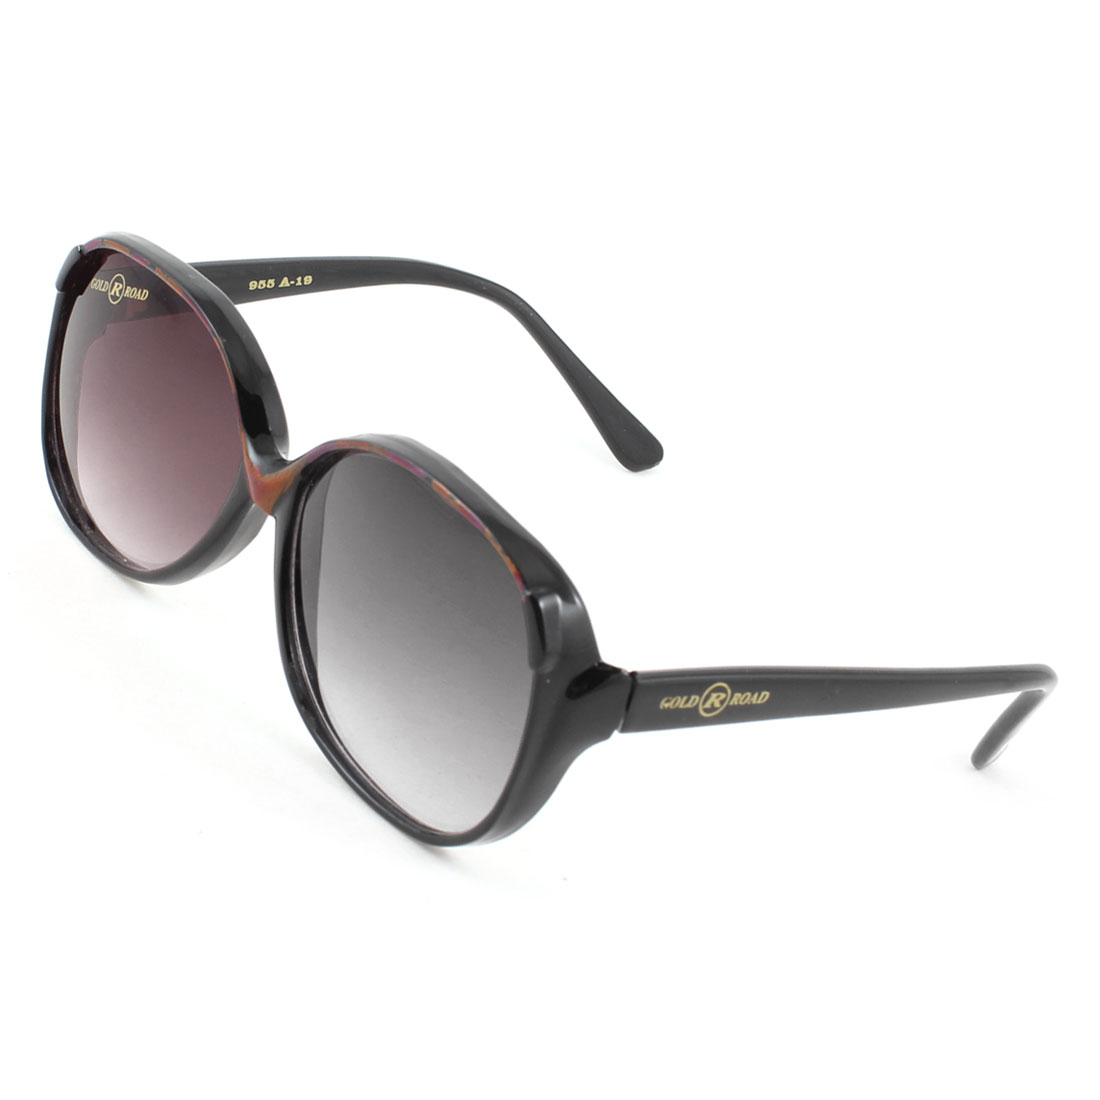 Woman Lady Single Bridge Black Arms Two Color Lens Full Frame Sunglasses